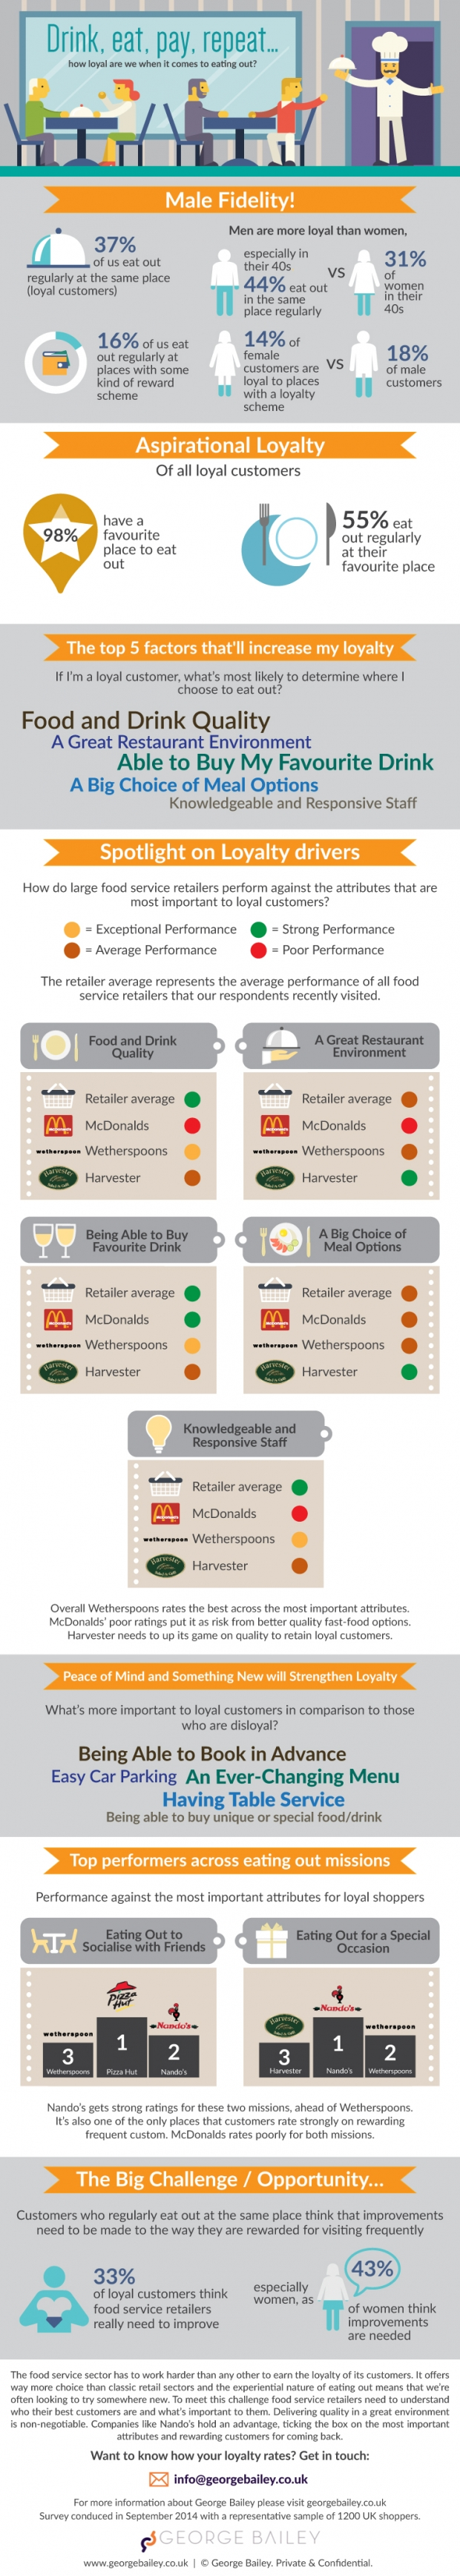 GB-foodservice-infographic-Oct-2014